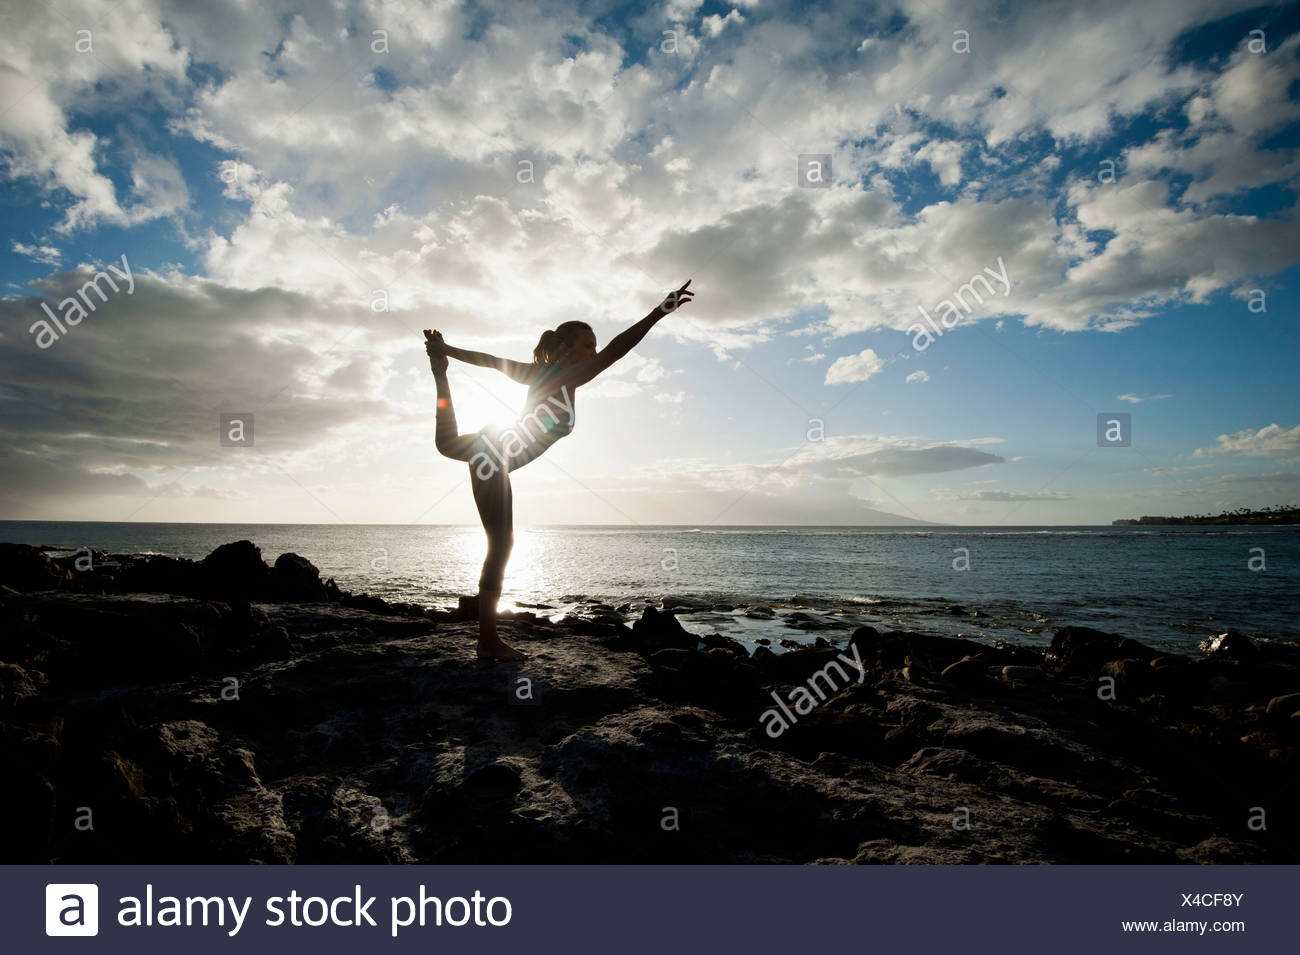 Woman practicing yoga on rock formation - Stock Image